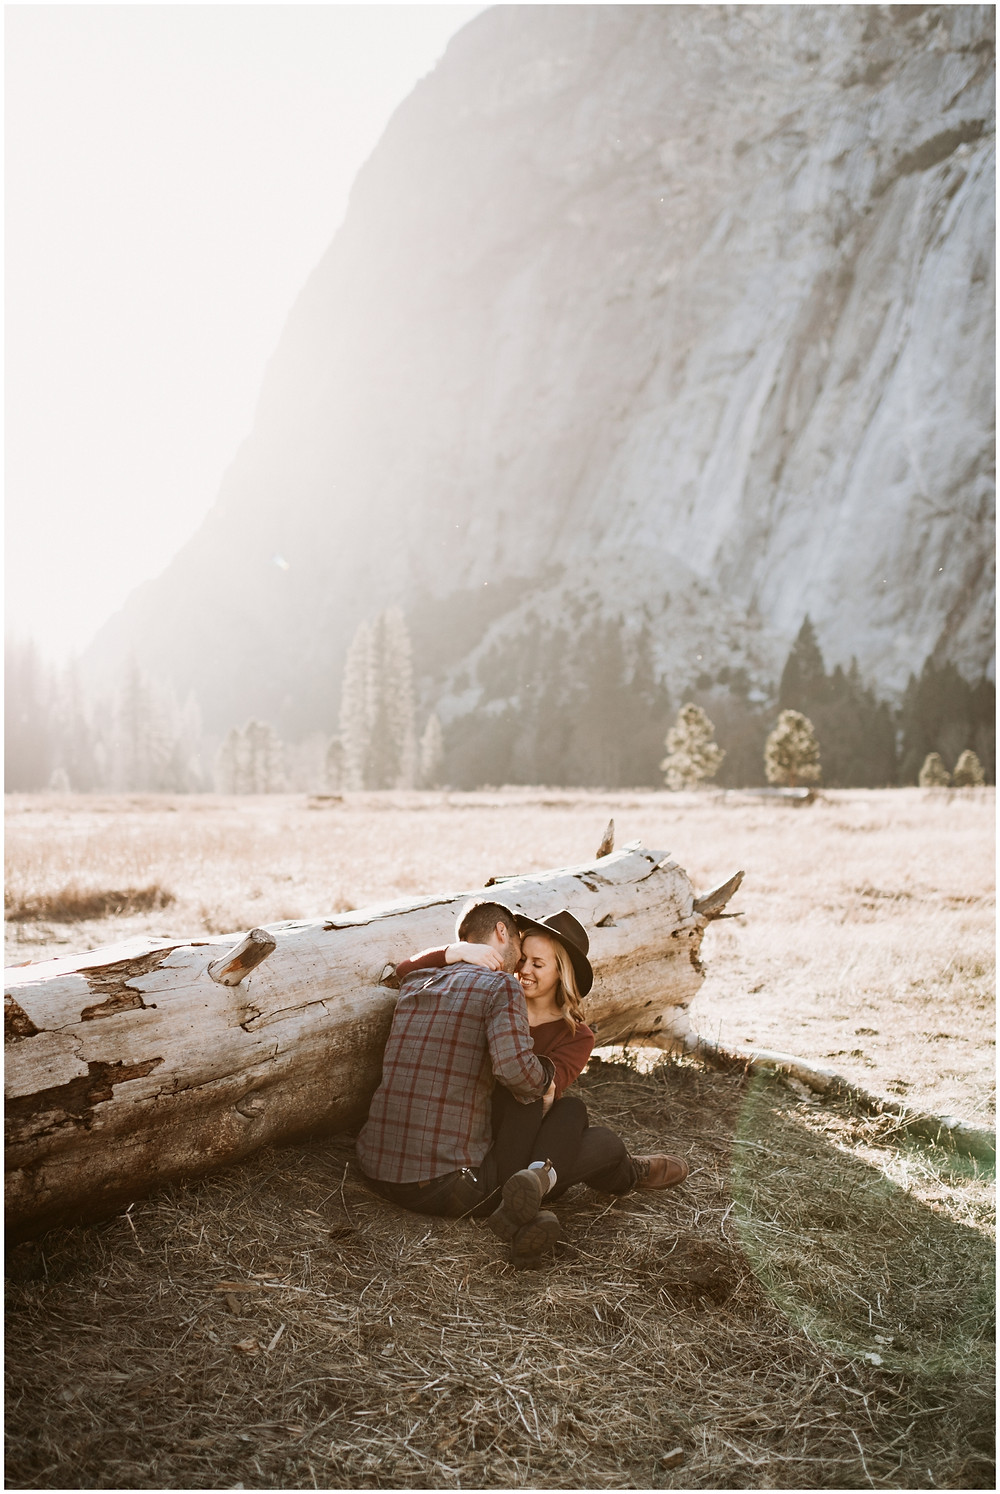 Exploring Yosemite Valley, California by Mountainaire Gatherings